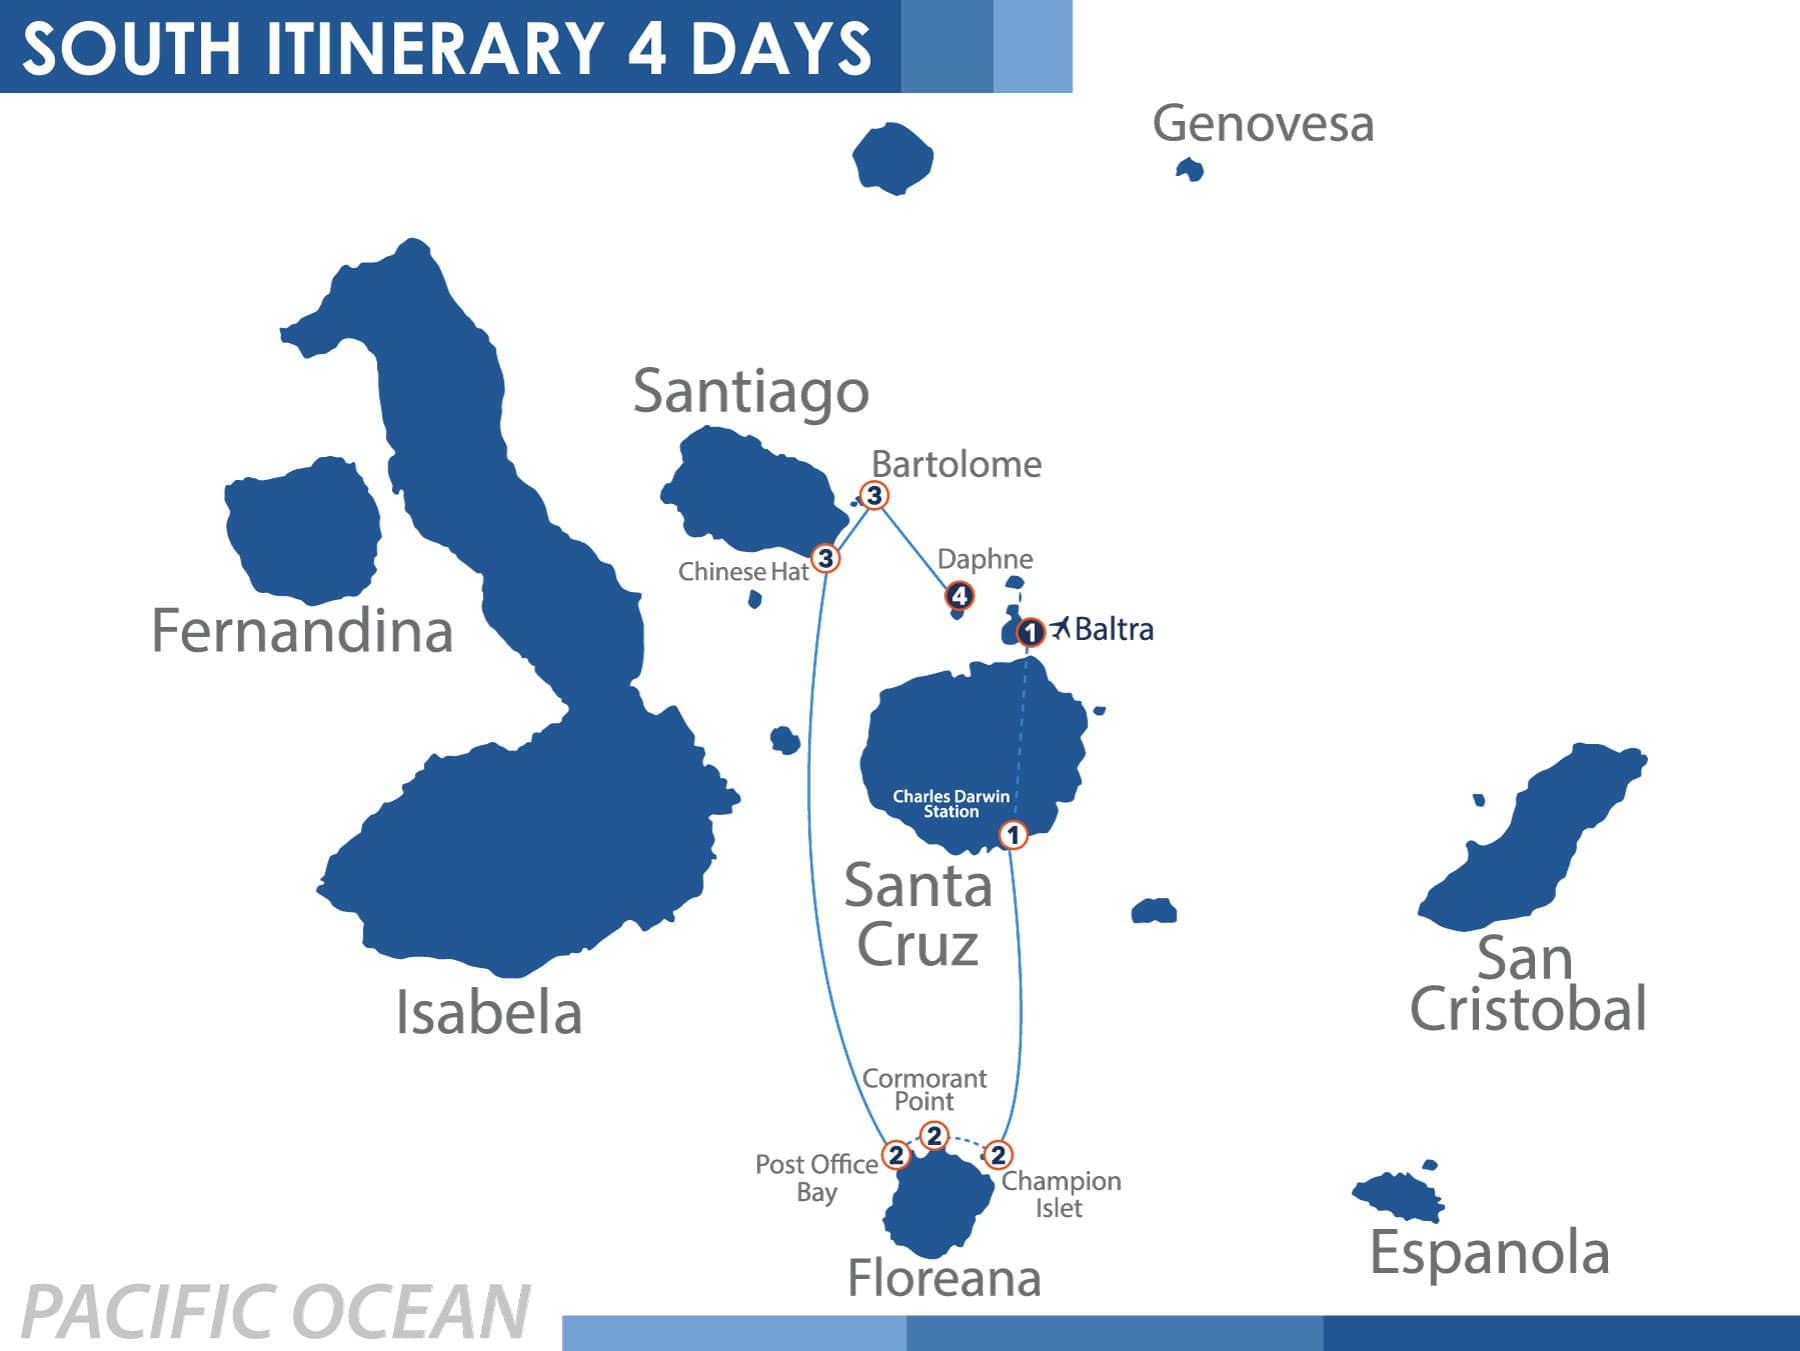 South Itinerary B4 (4 days) for Nemo II